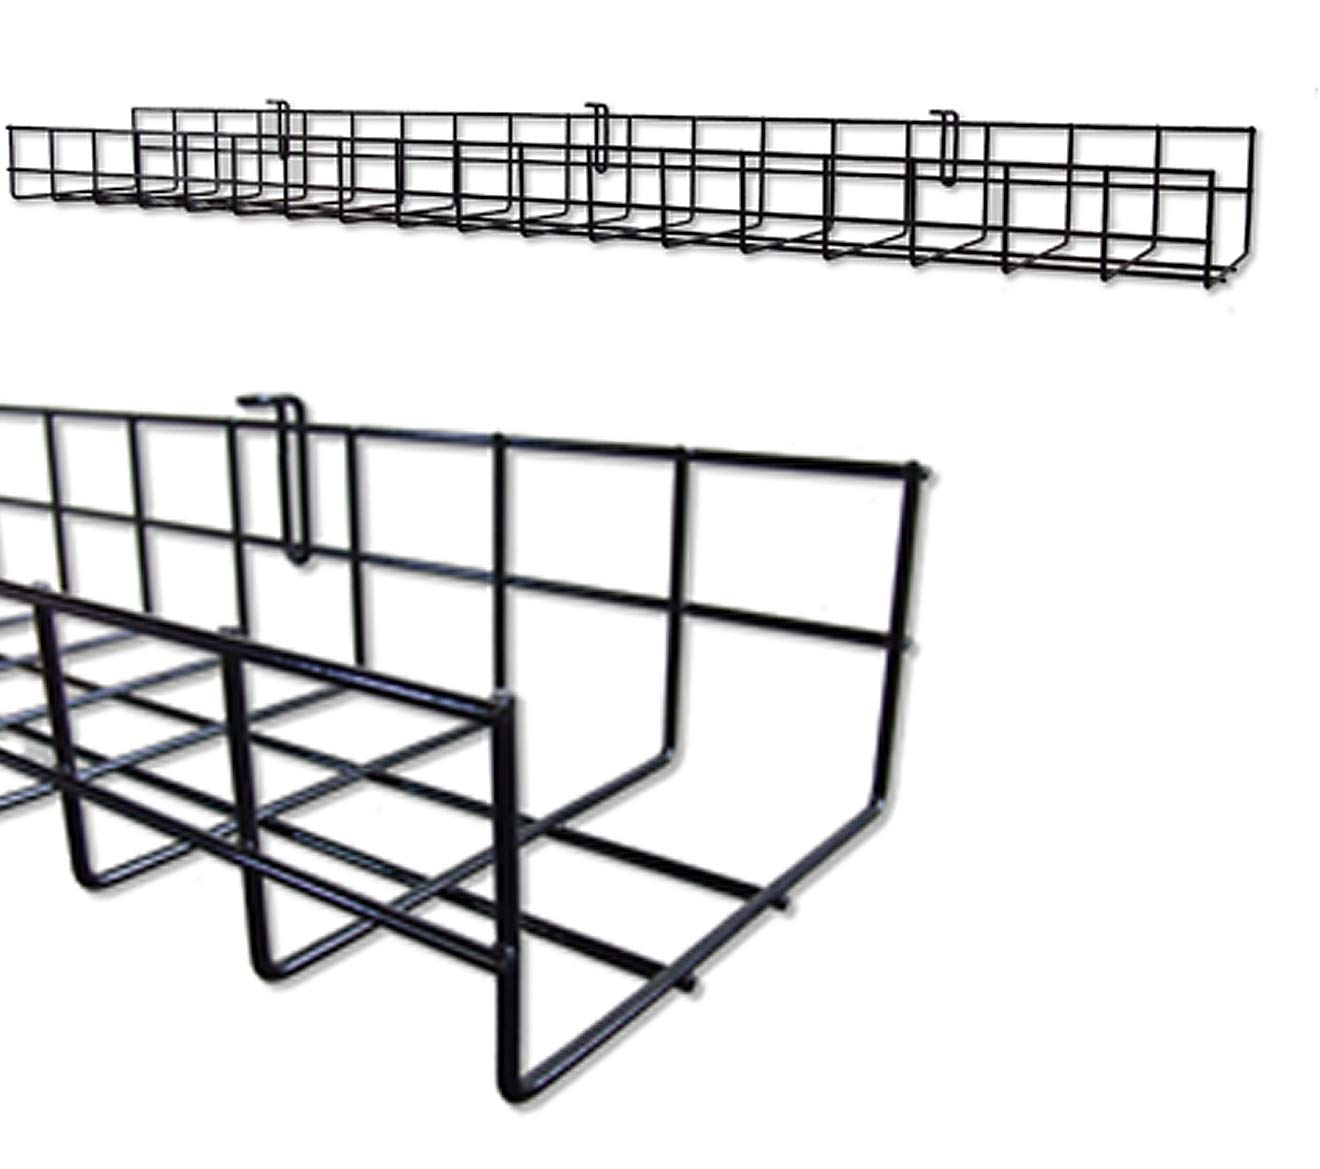 36 Inch Cable Organizer by Northland Office Parts